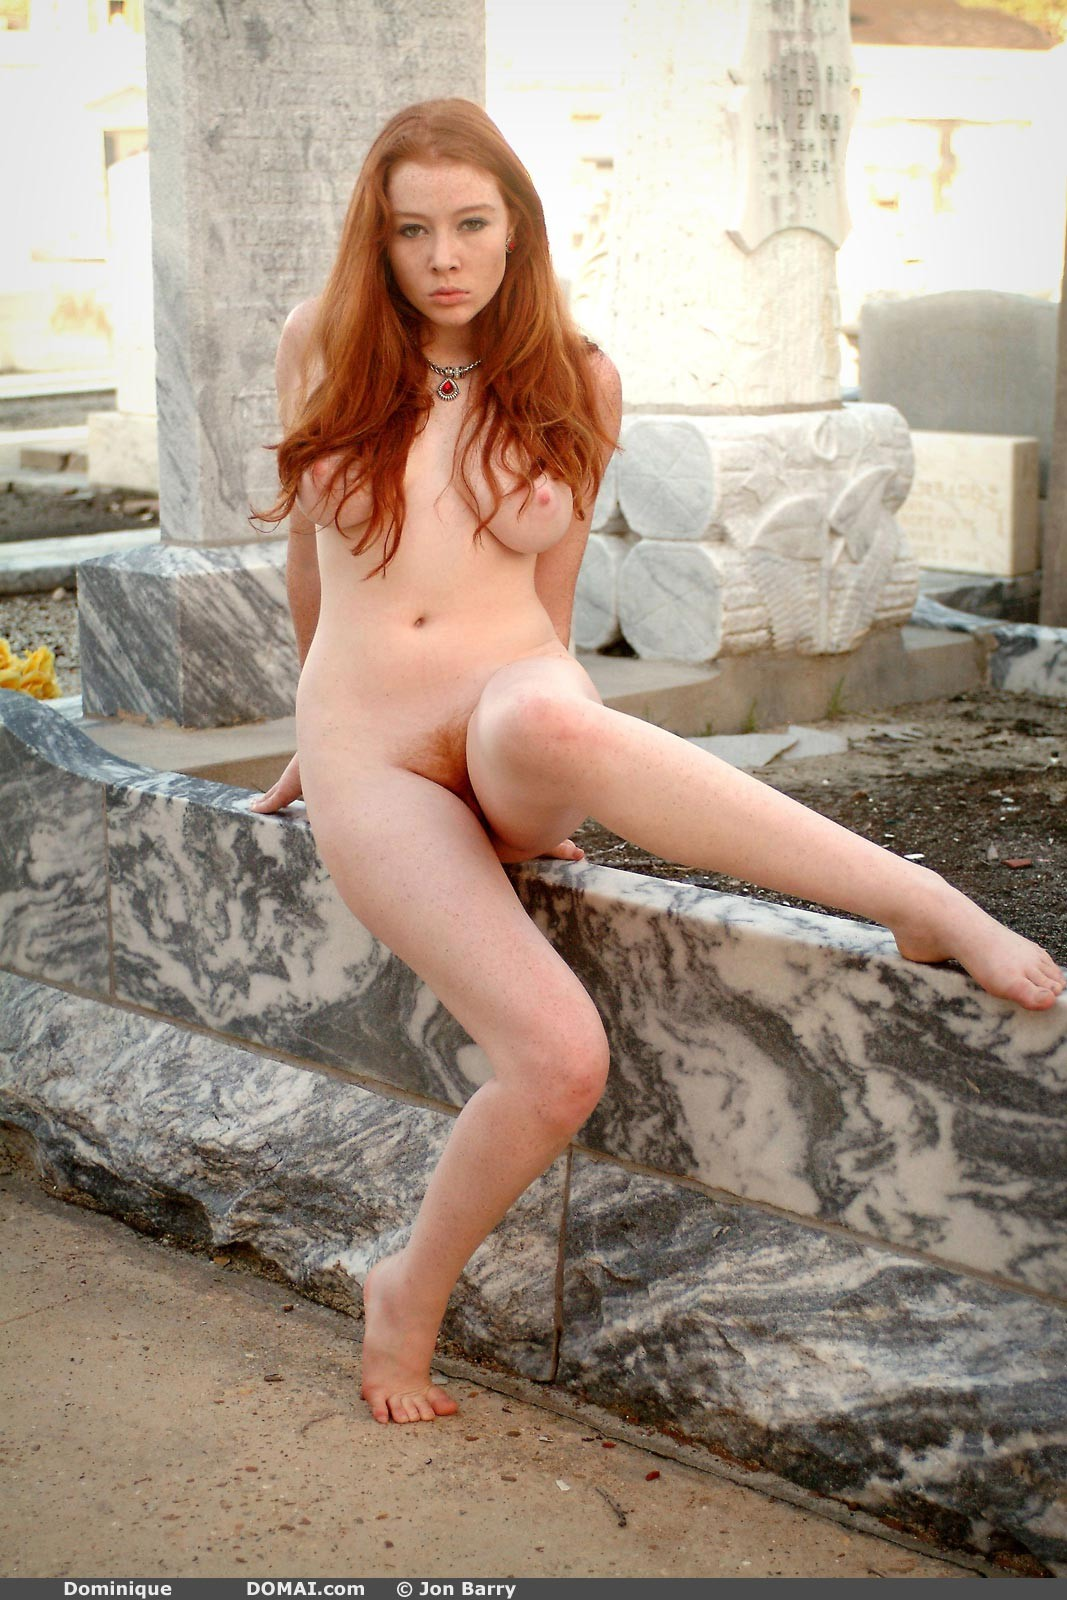 dominique mcelligott nude